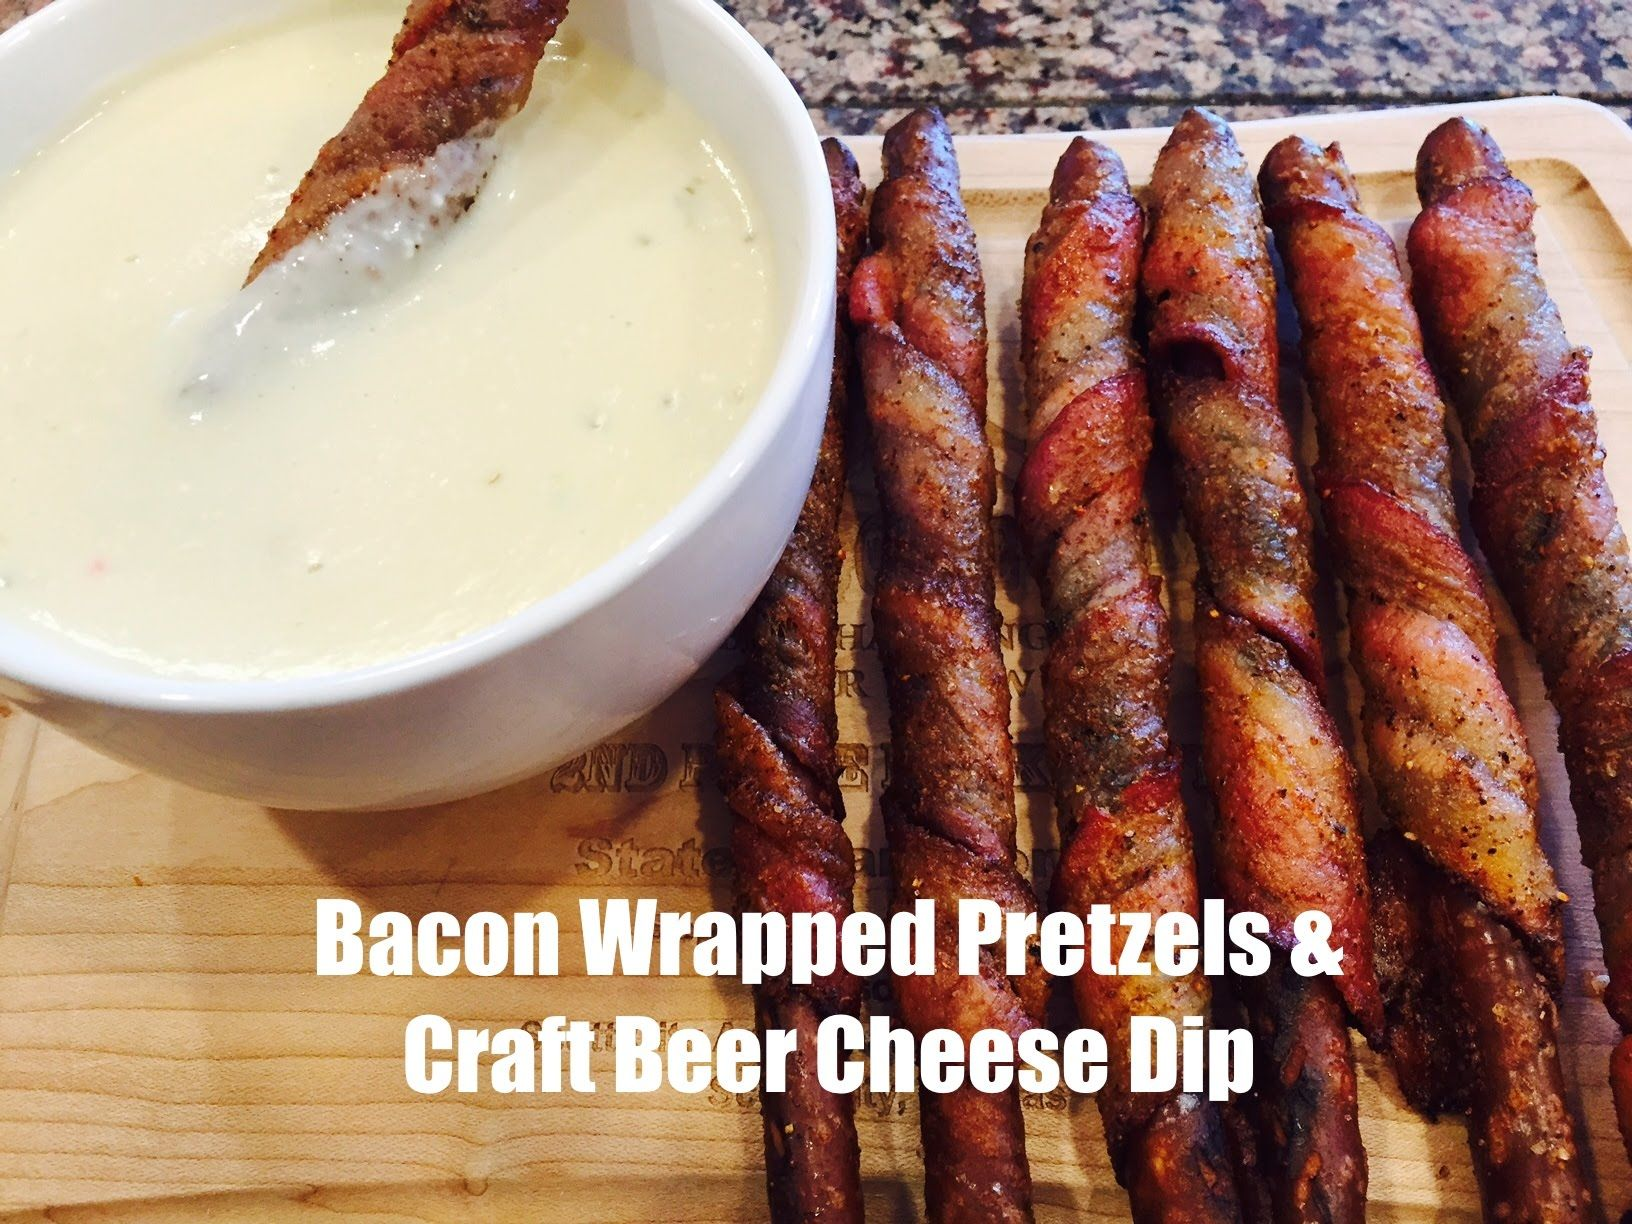 Another Awesome Snack for your next tailgate or football party. Today I'll show you a Bacon Wrapped Pretzel & Craft Beer Cheese Dip #tailgatefood